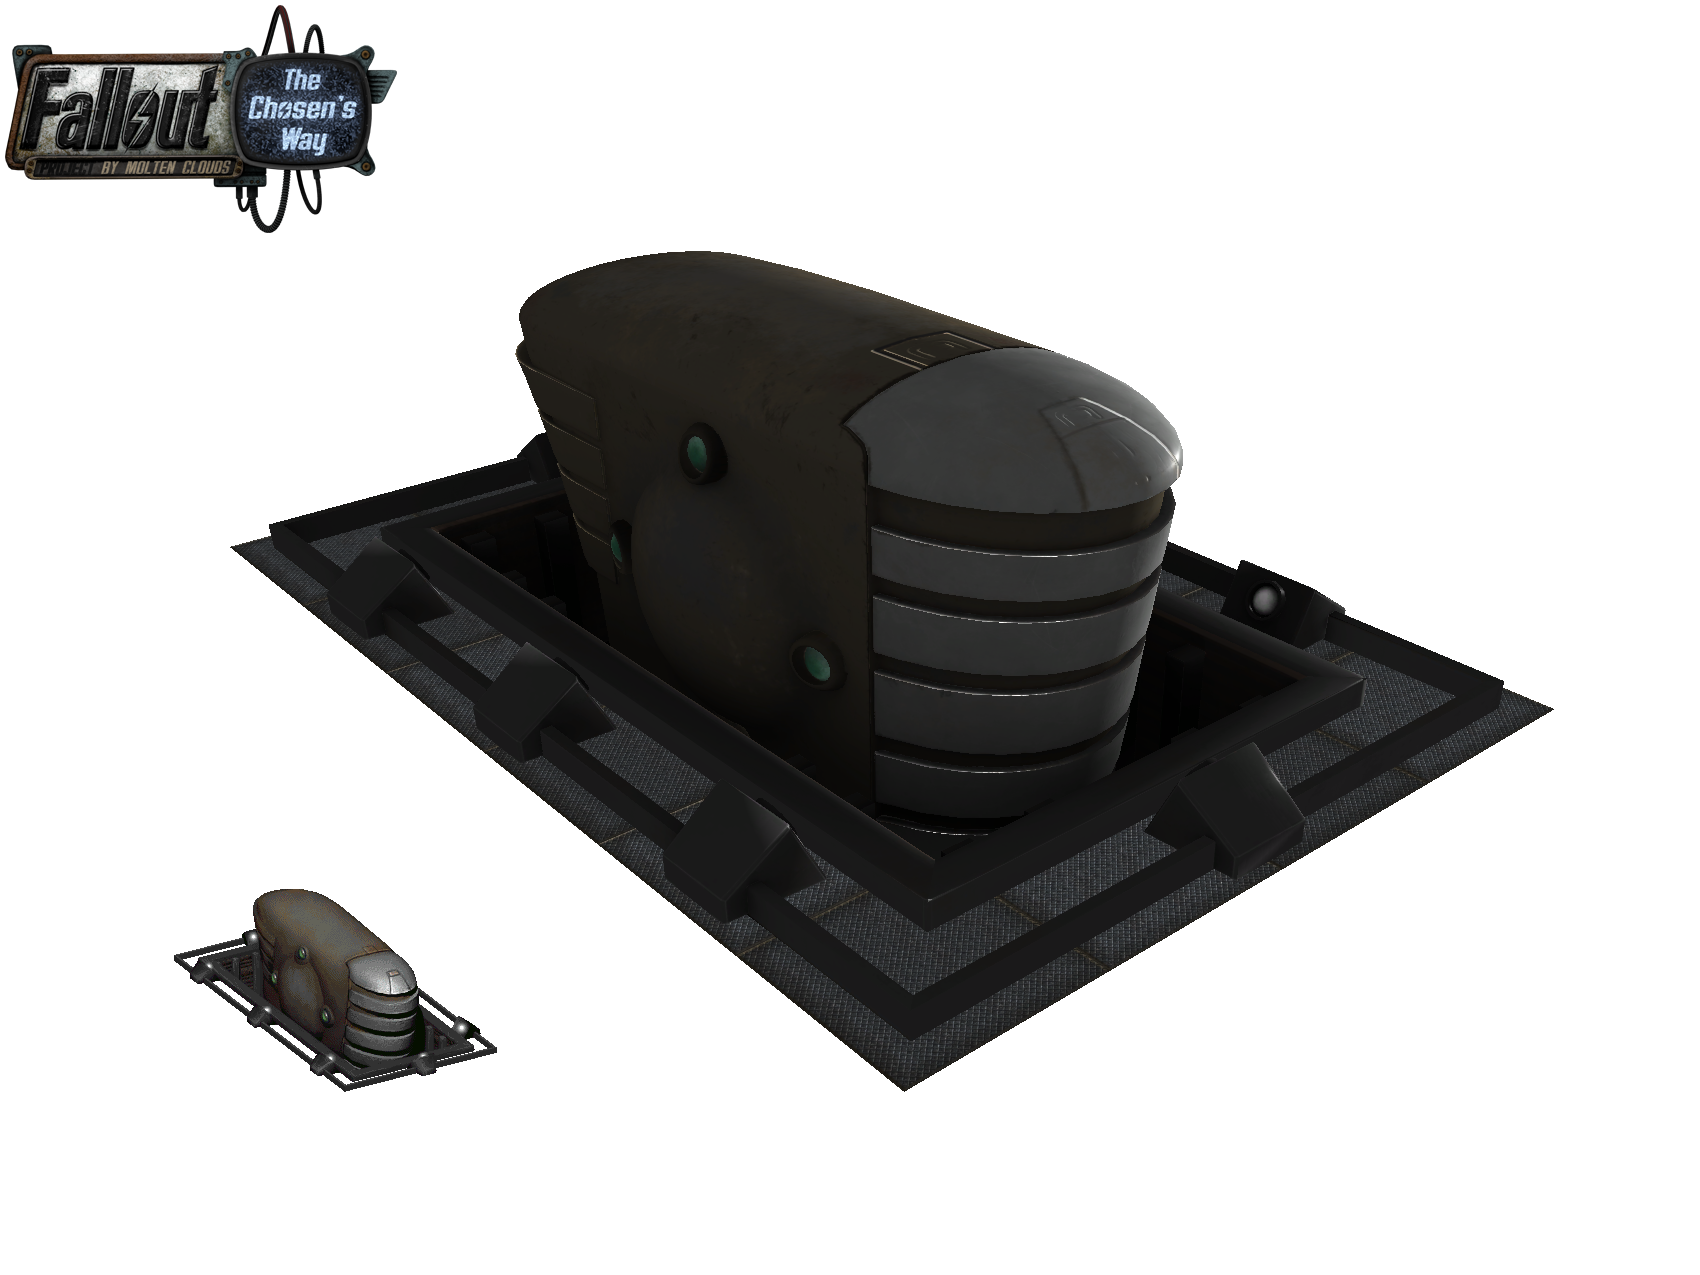 Military mainframe from Fallout 2